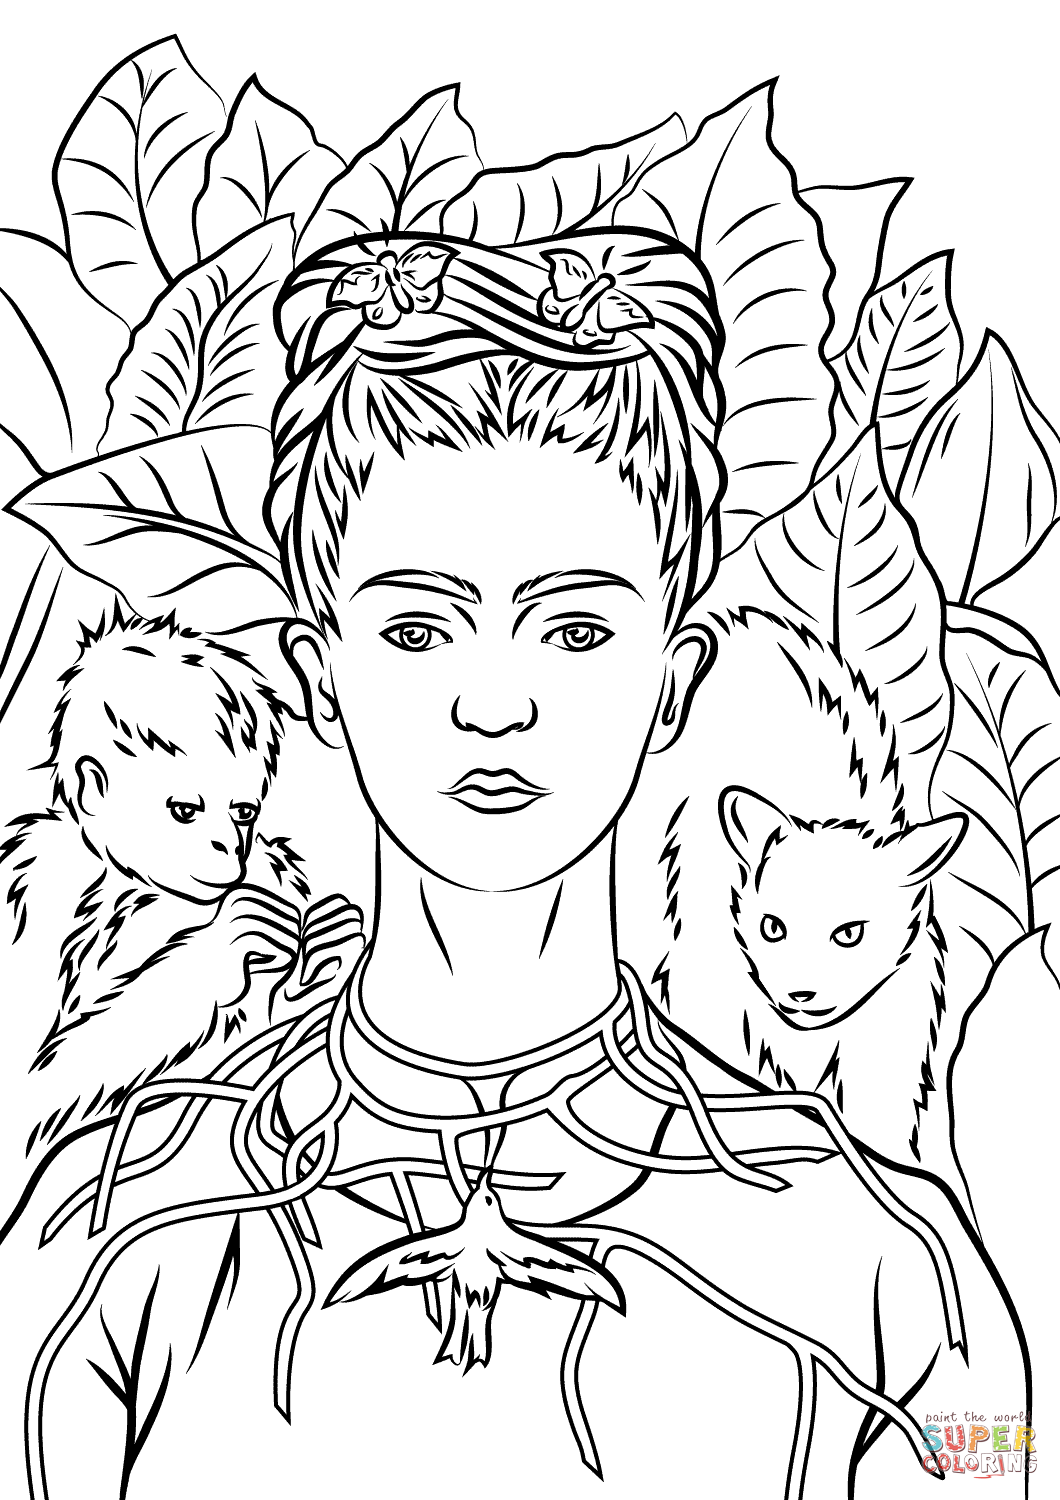 Worksheets Frida Kahlo Worksheets self portrait with necklace of thorns by frida kahlo super coloring